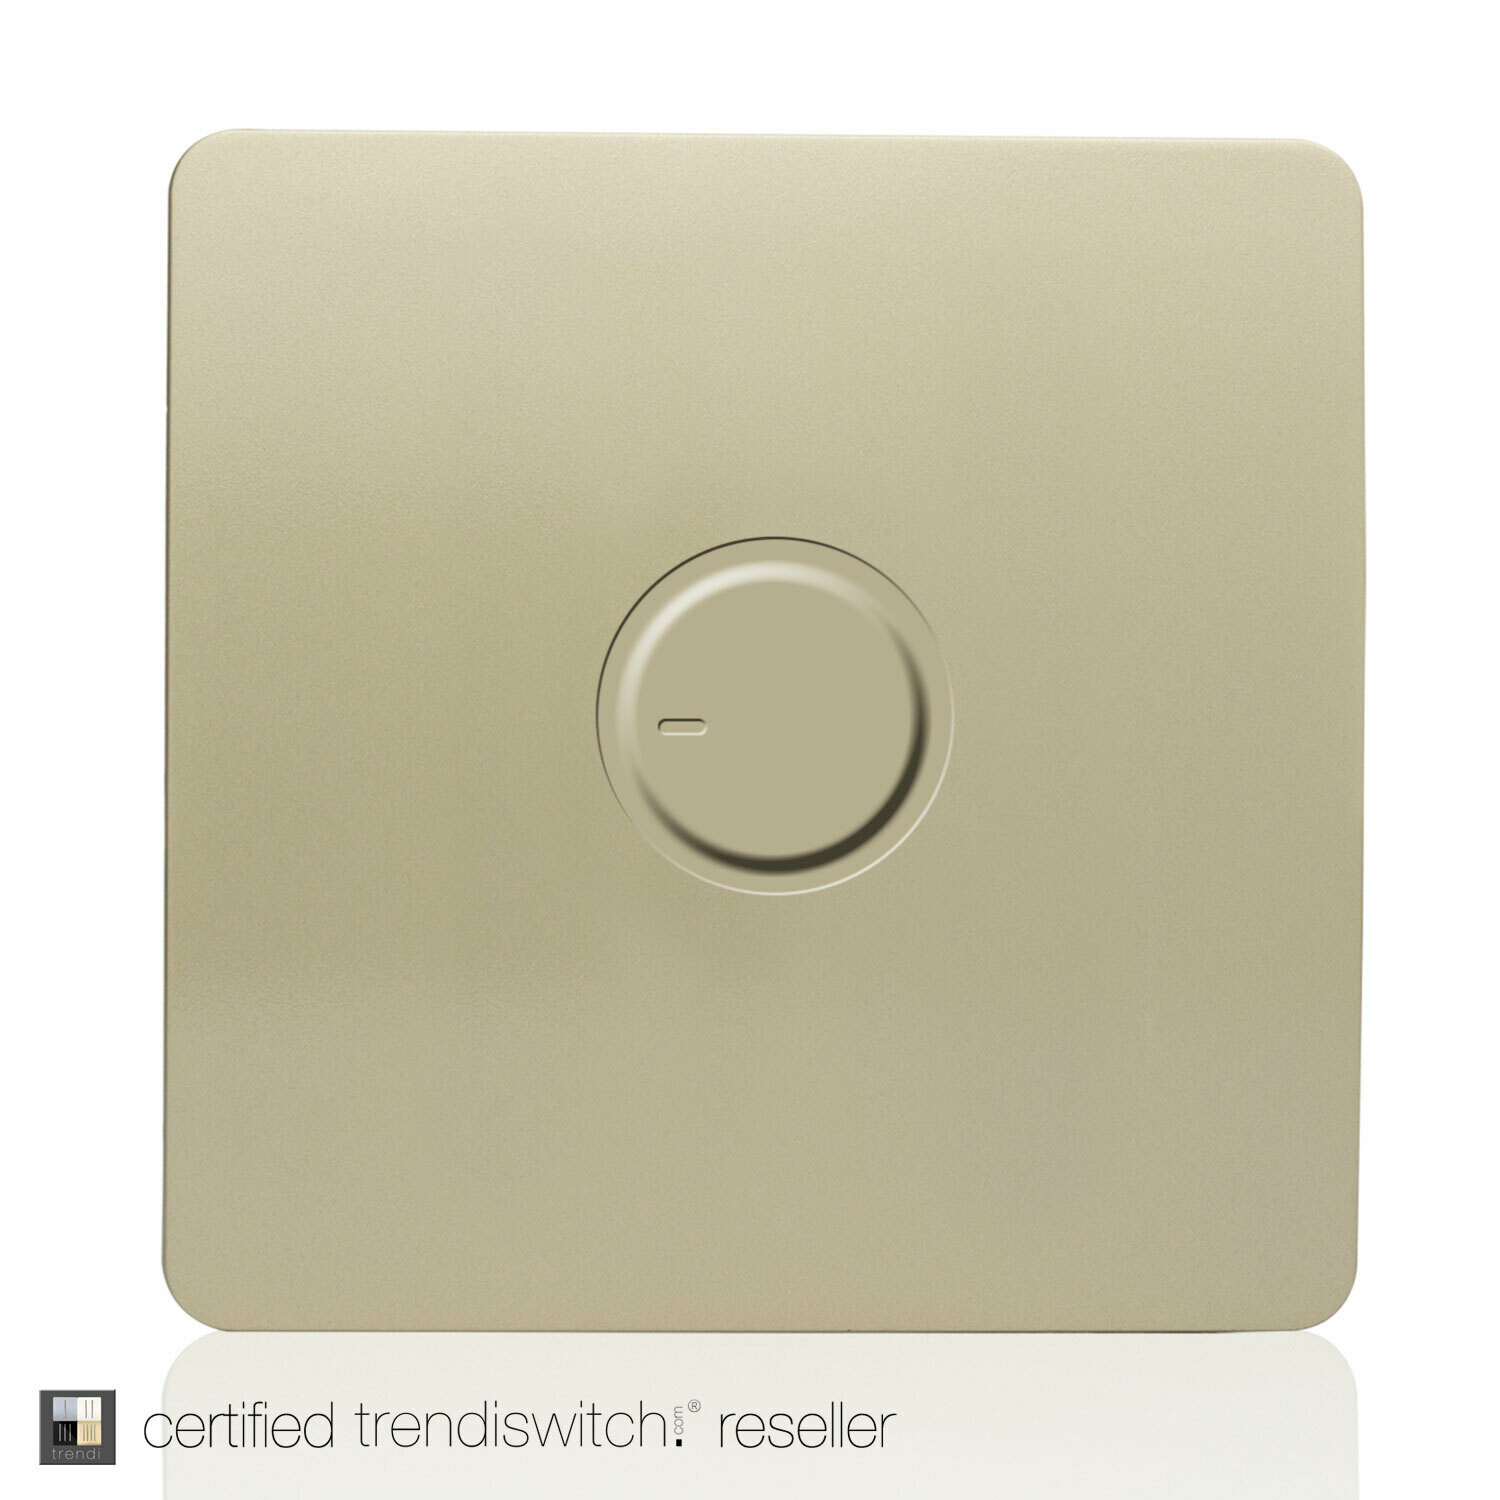 Trendi, Artistic Modern 1 Gang Fan Speed Controller Champagne Gold Finish, BRITISH MADE, 5yrs warranty